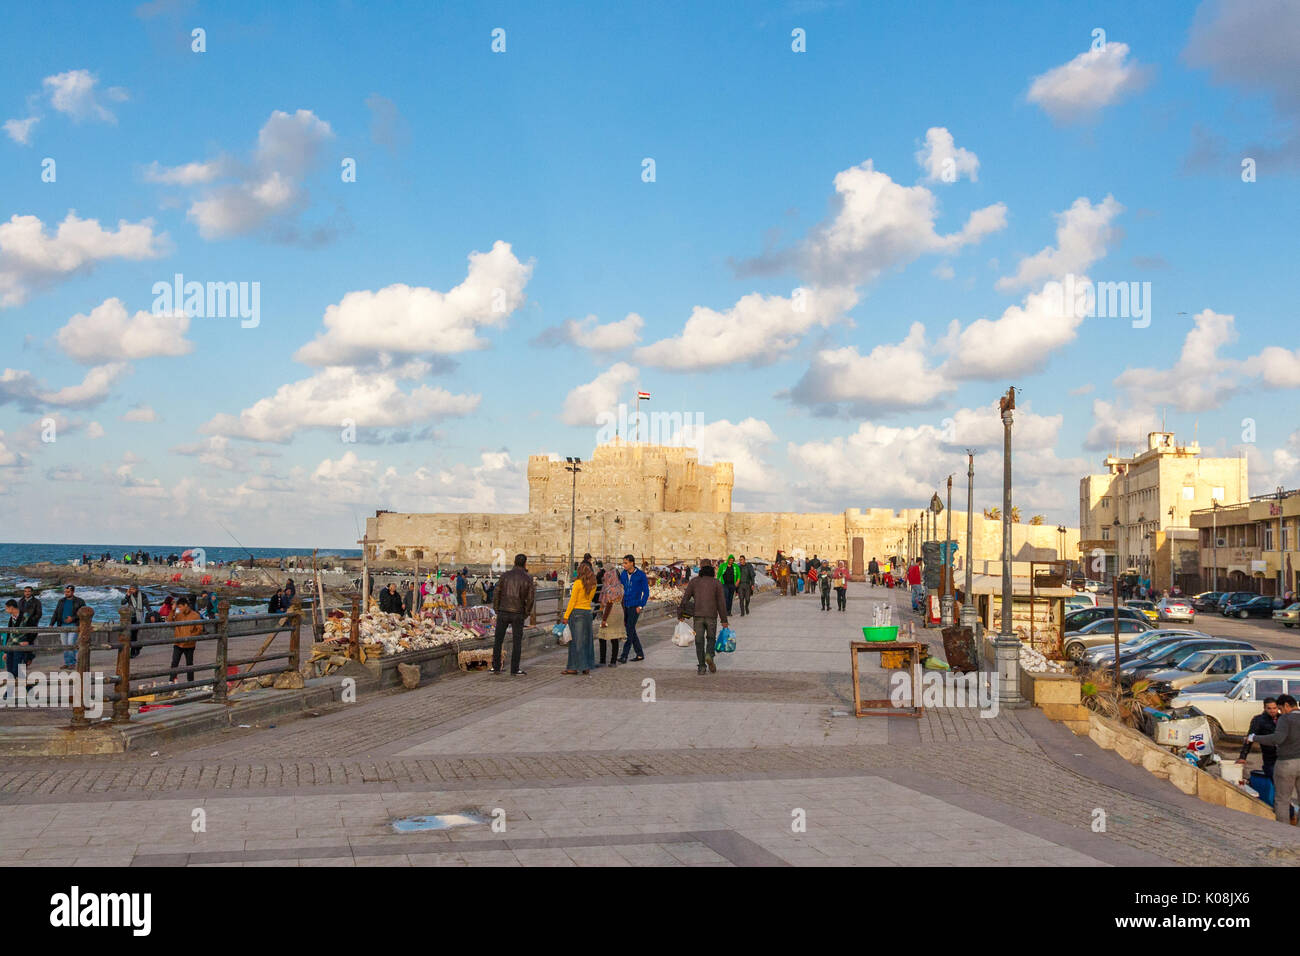 Alexandria Historical View of Qaetbay Castle Under Cloudy Sky - Stock Image